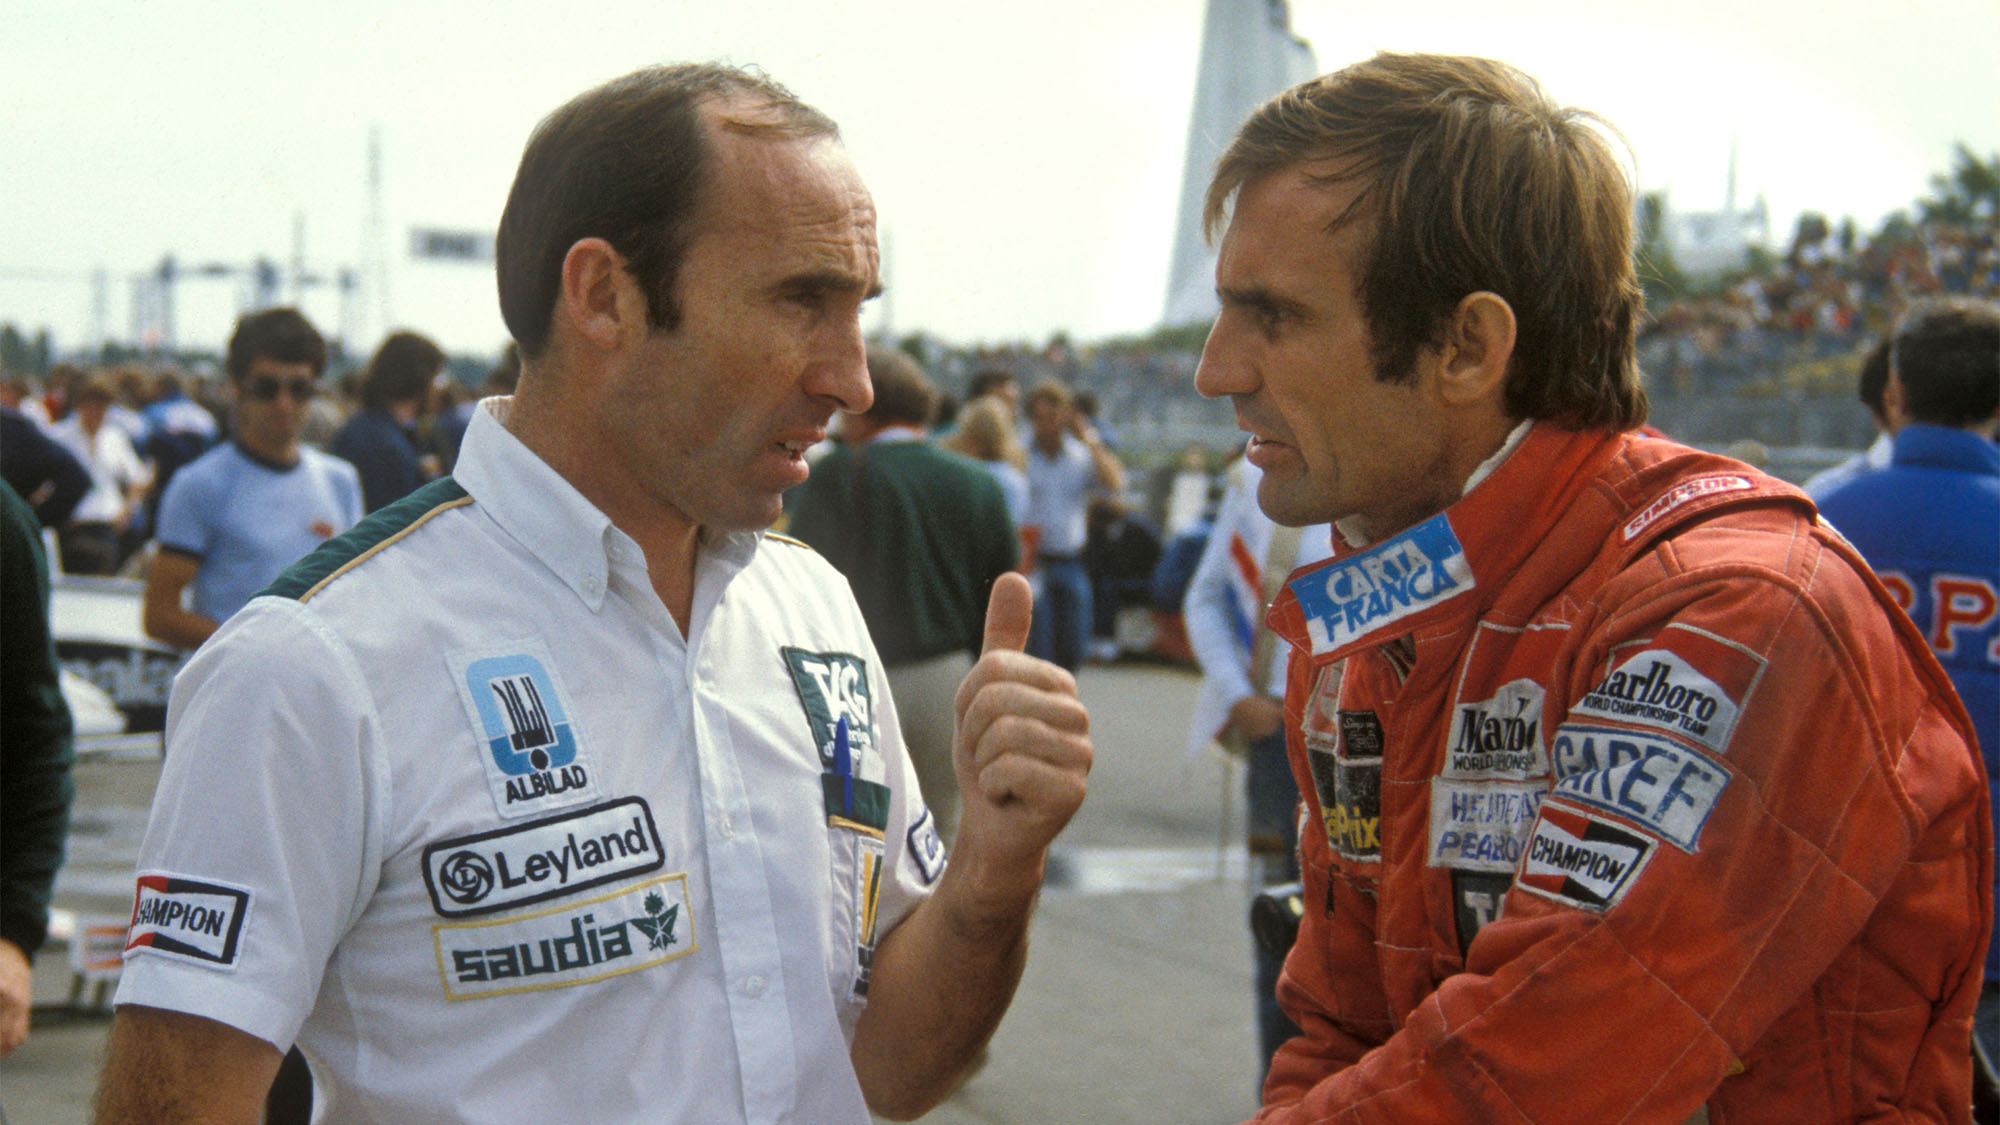 Team Principal Frank Williams and Carlos Reutemann (Williams-Ford) before the 1981 Canadian Grand Prix in Montreal. Photo: Grand Prix Photo